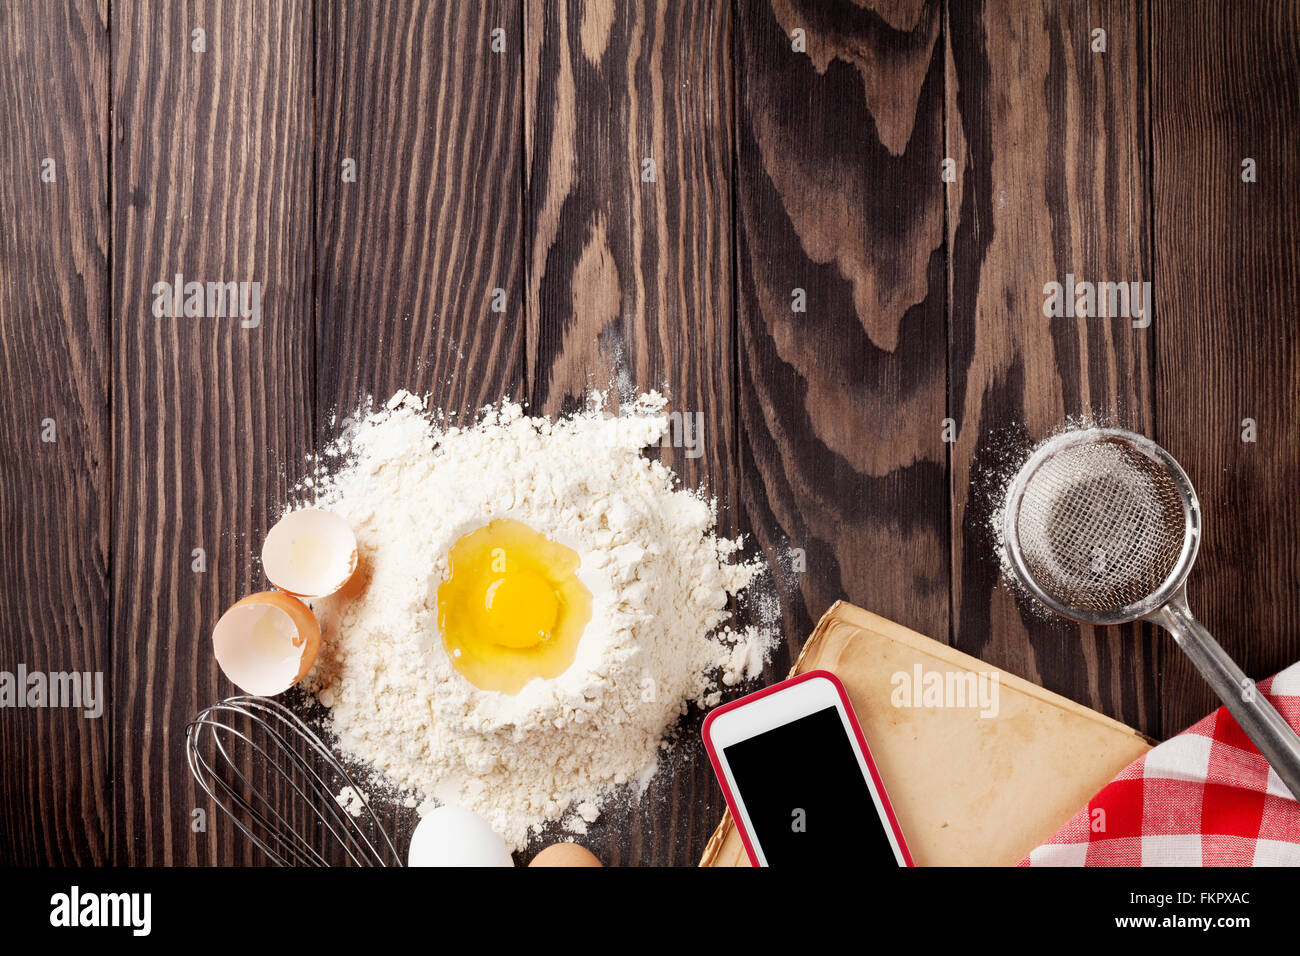 Kitchen table with ingredients, utensils and vintage recipe cooking book. Top view with copy space - Stock Image